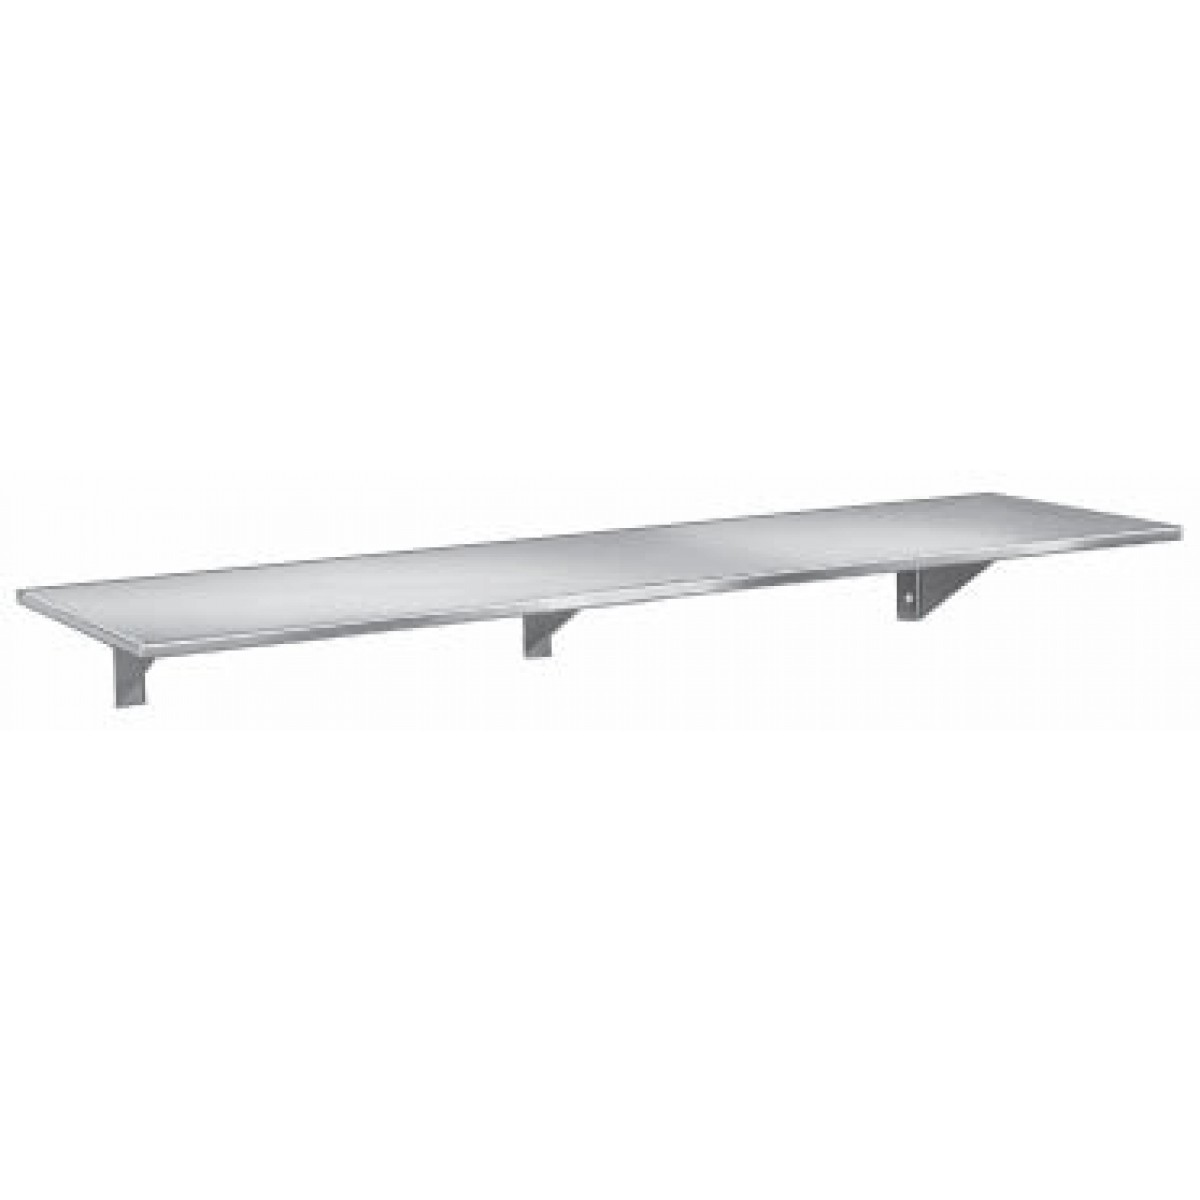 "Bradley 7512-24 Stainless Steel Shelf 12"" Depth"